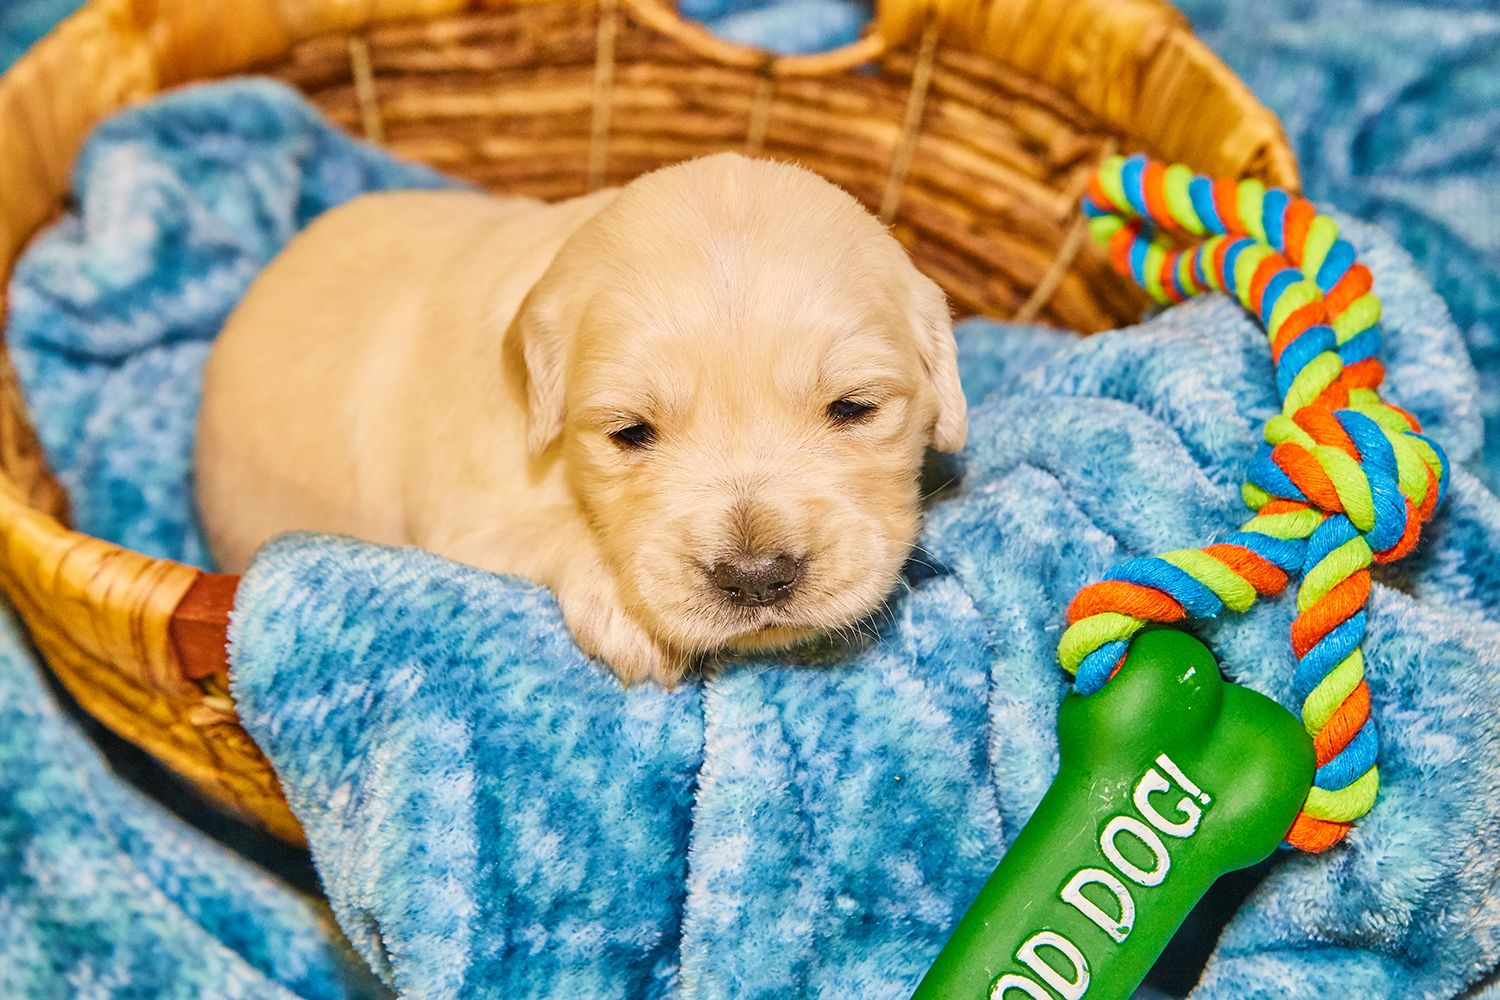 Are You Interested In An Amazing Golden Retriever Our Pups Will Be Old Enough To Adopt Soon We Currently Have 4 Girls Puppy Adoption Puppies Golden Retriever